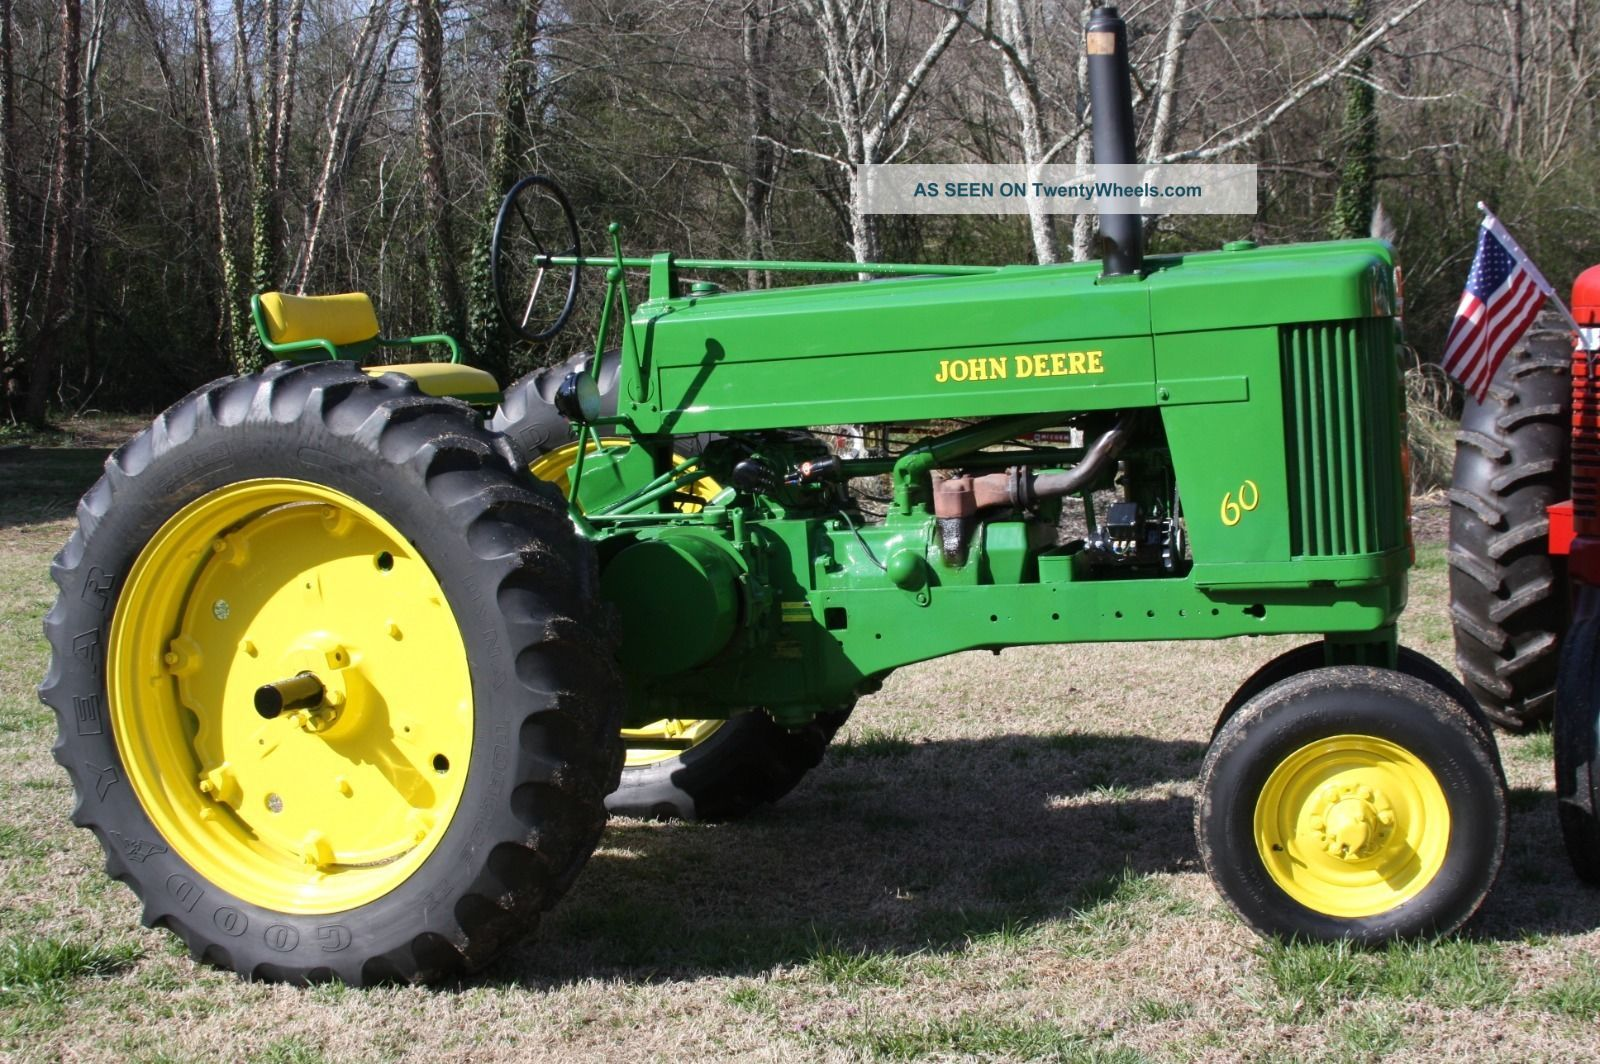 John Deere 60 Engine : John deere model dual fuel tractor restored